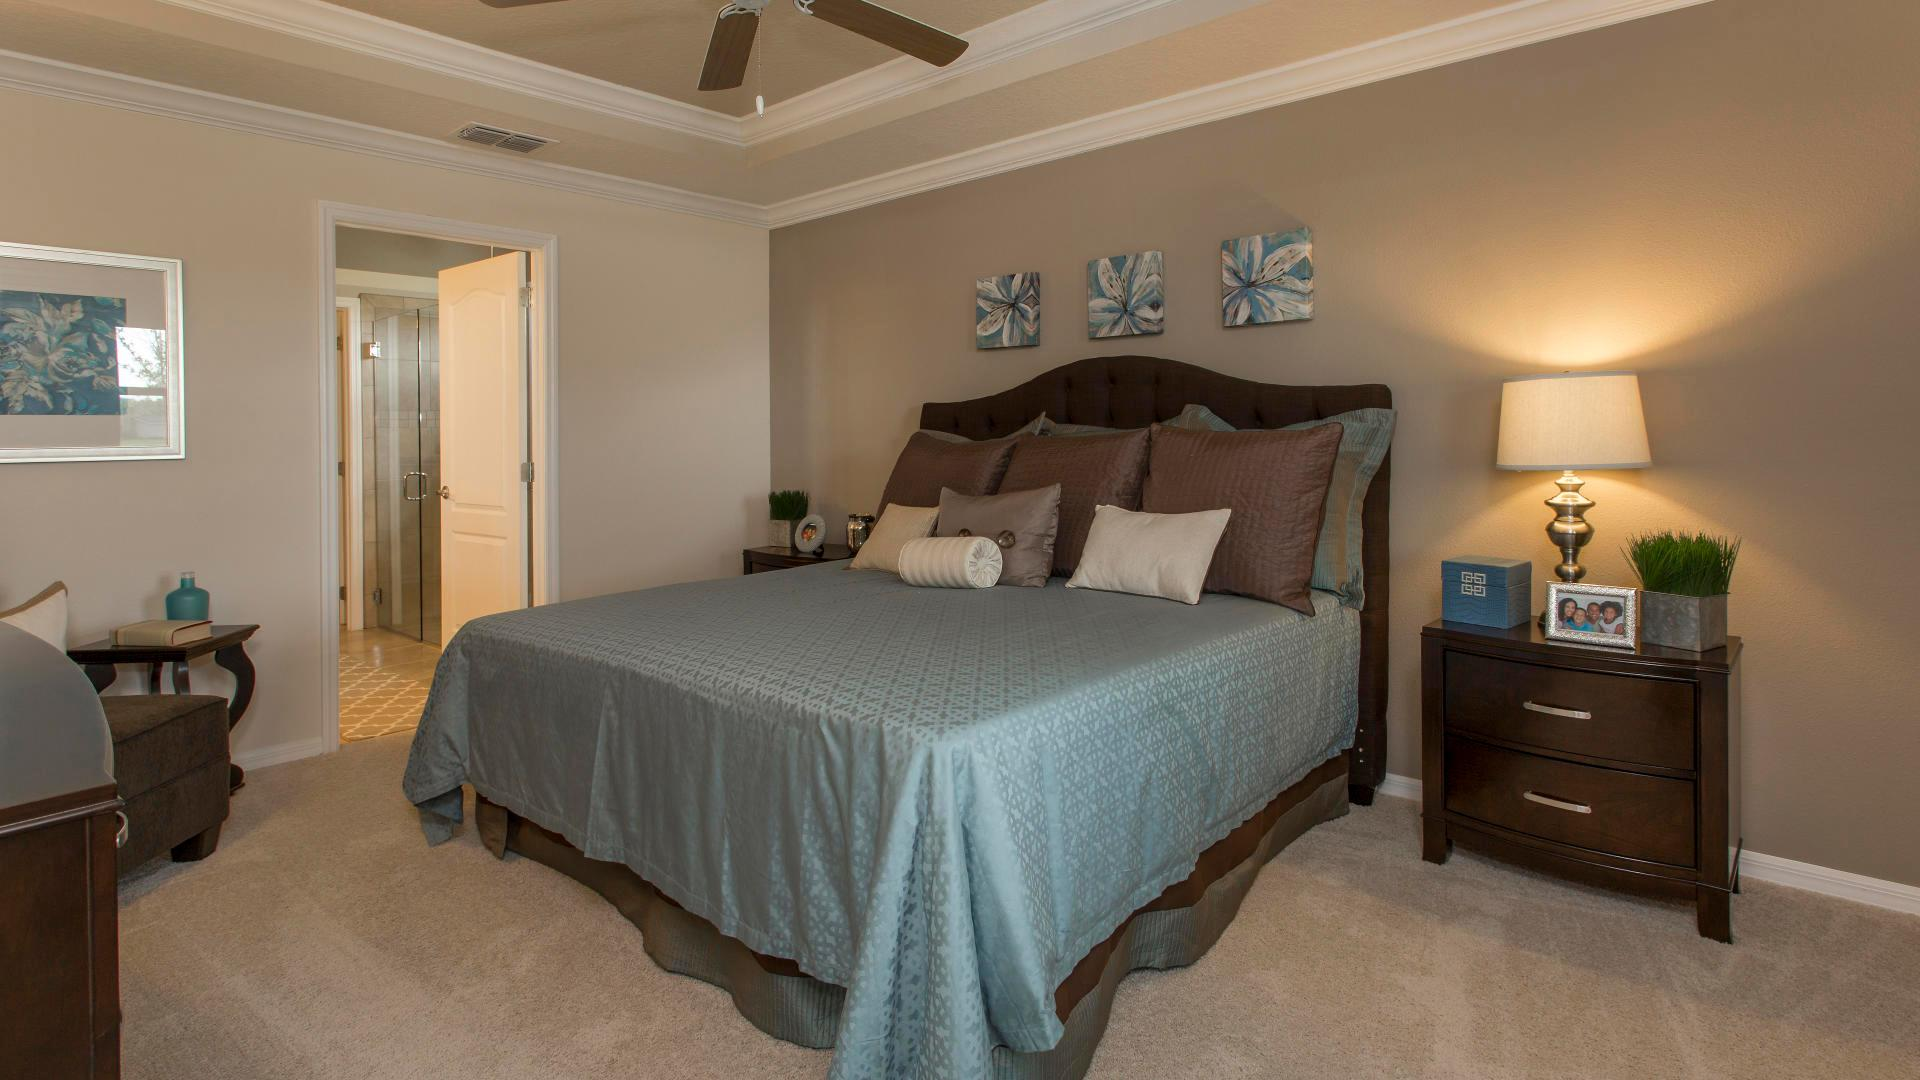 Bedroom featured in the Fairfield By Maronda Homes in Indian River County, FL